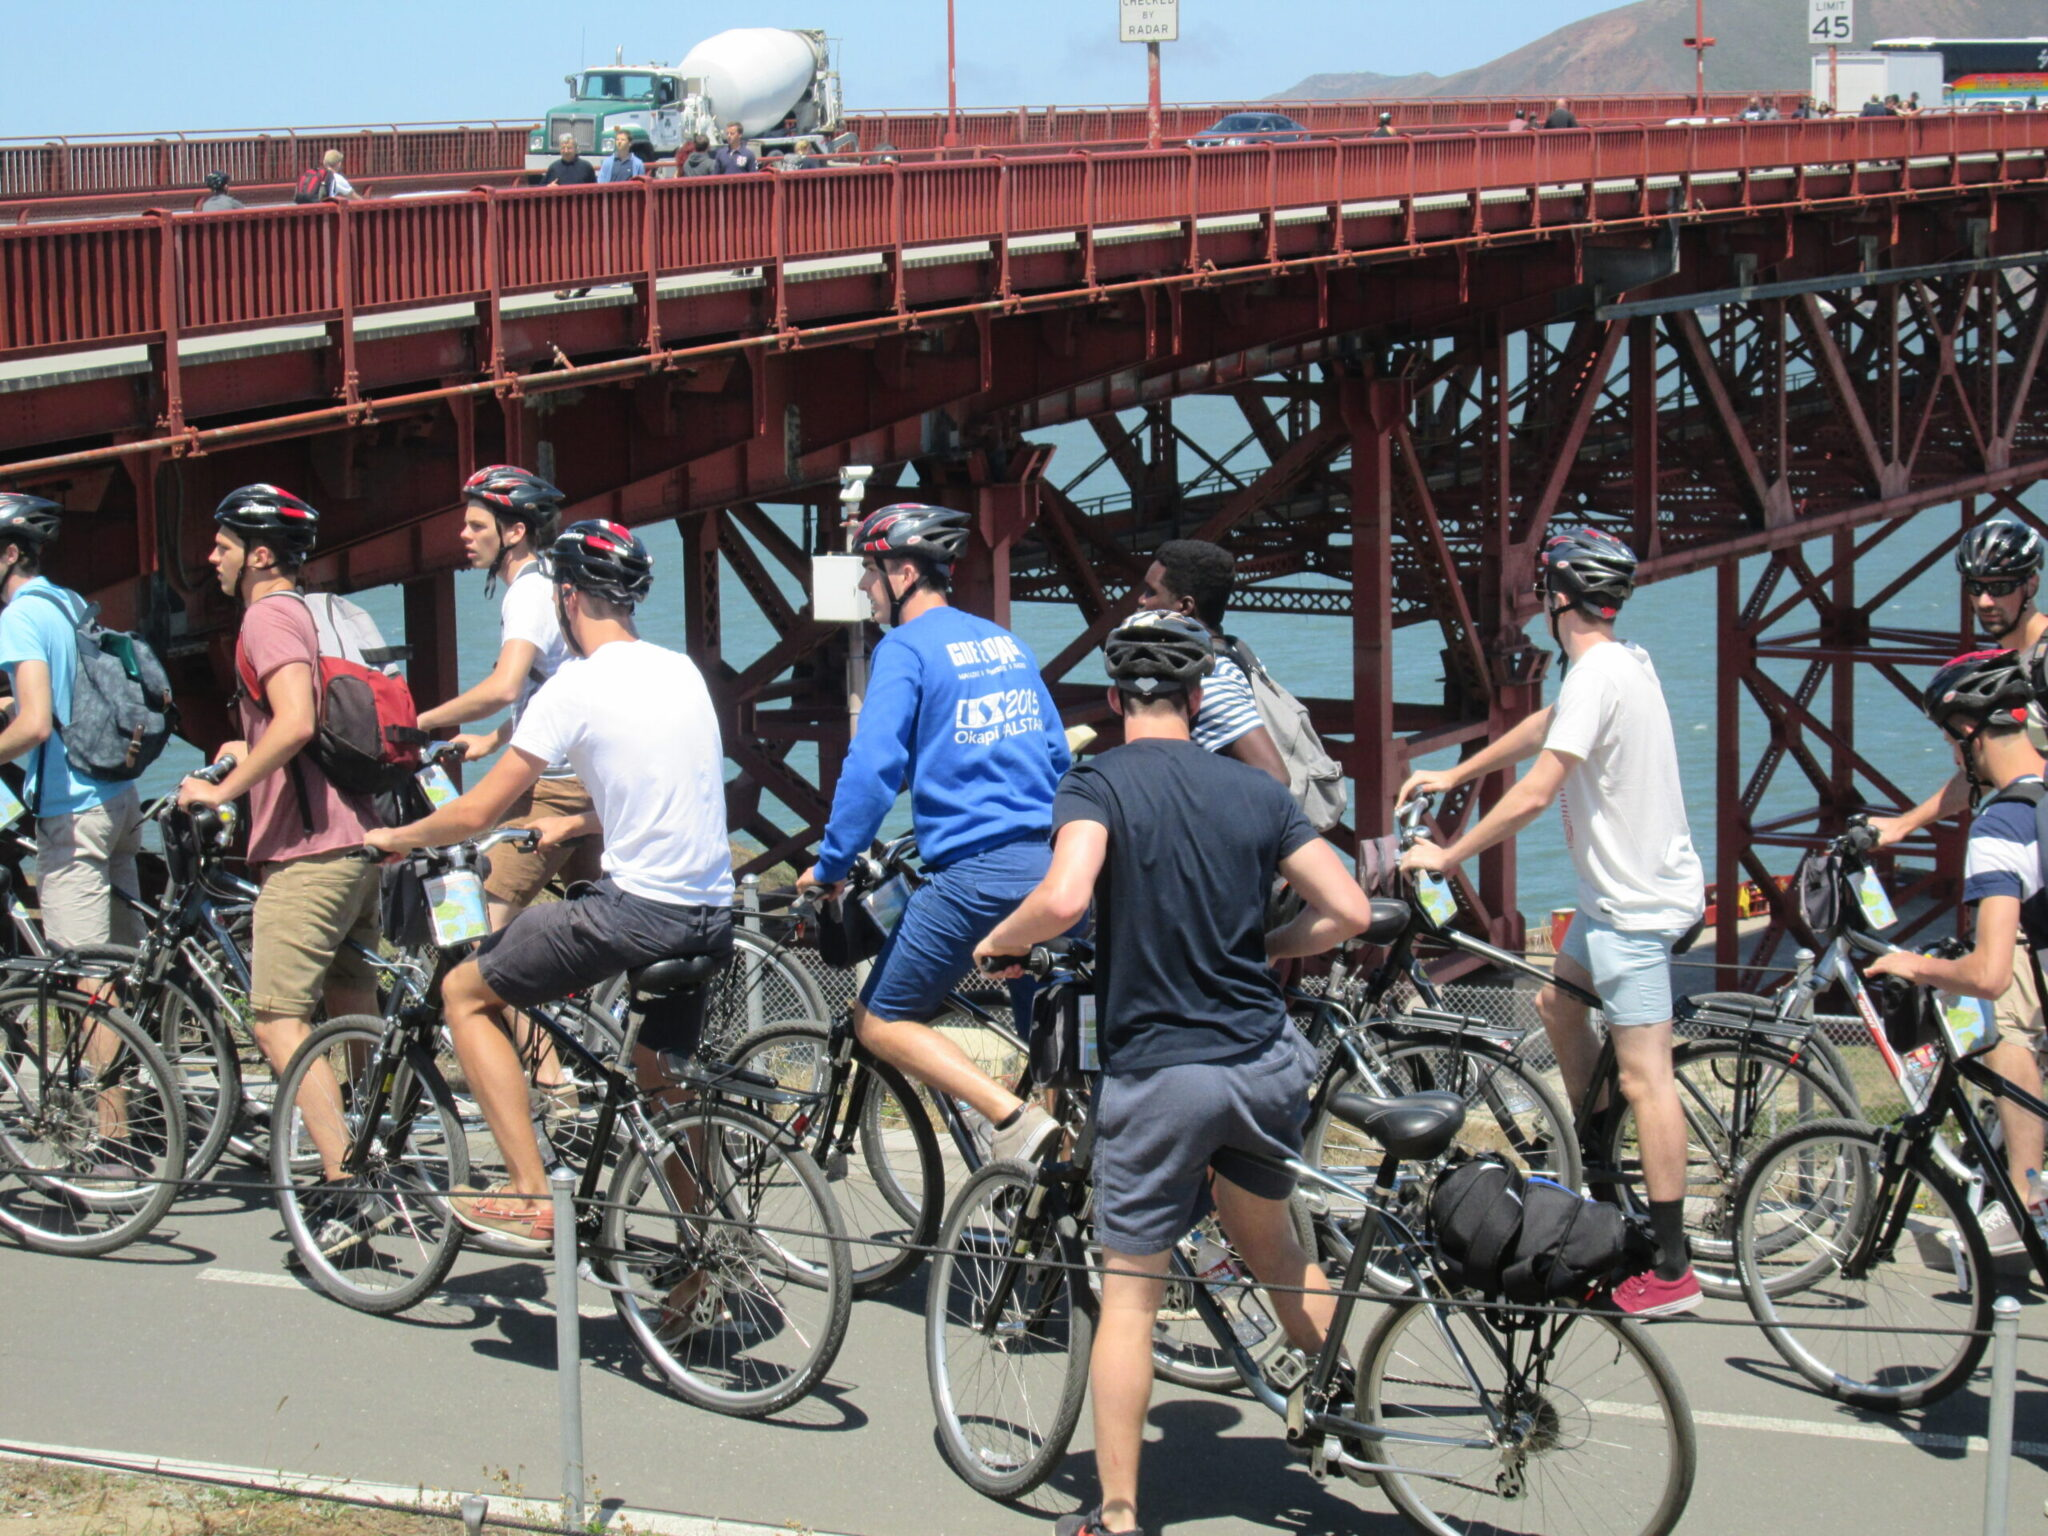 Bikers on the golden gate bridge